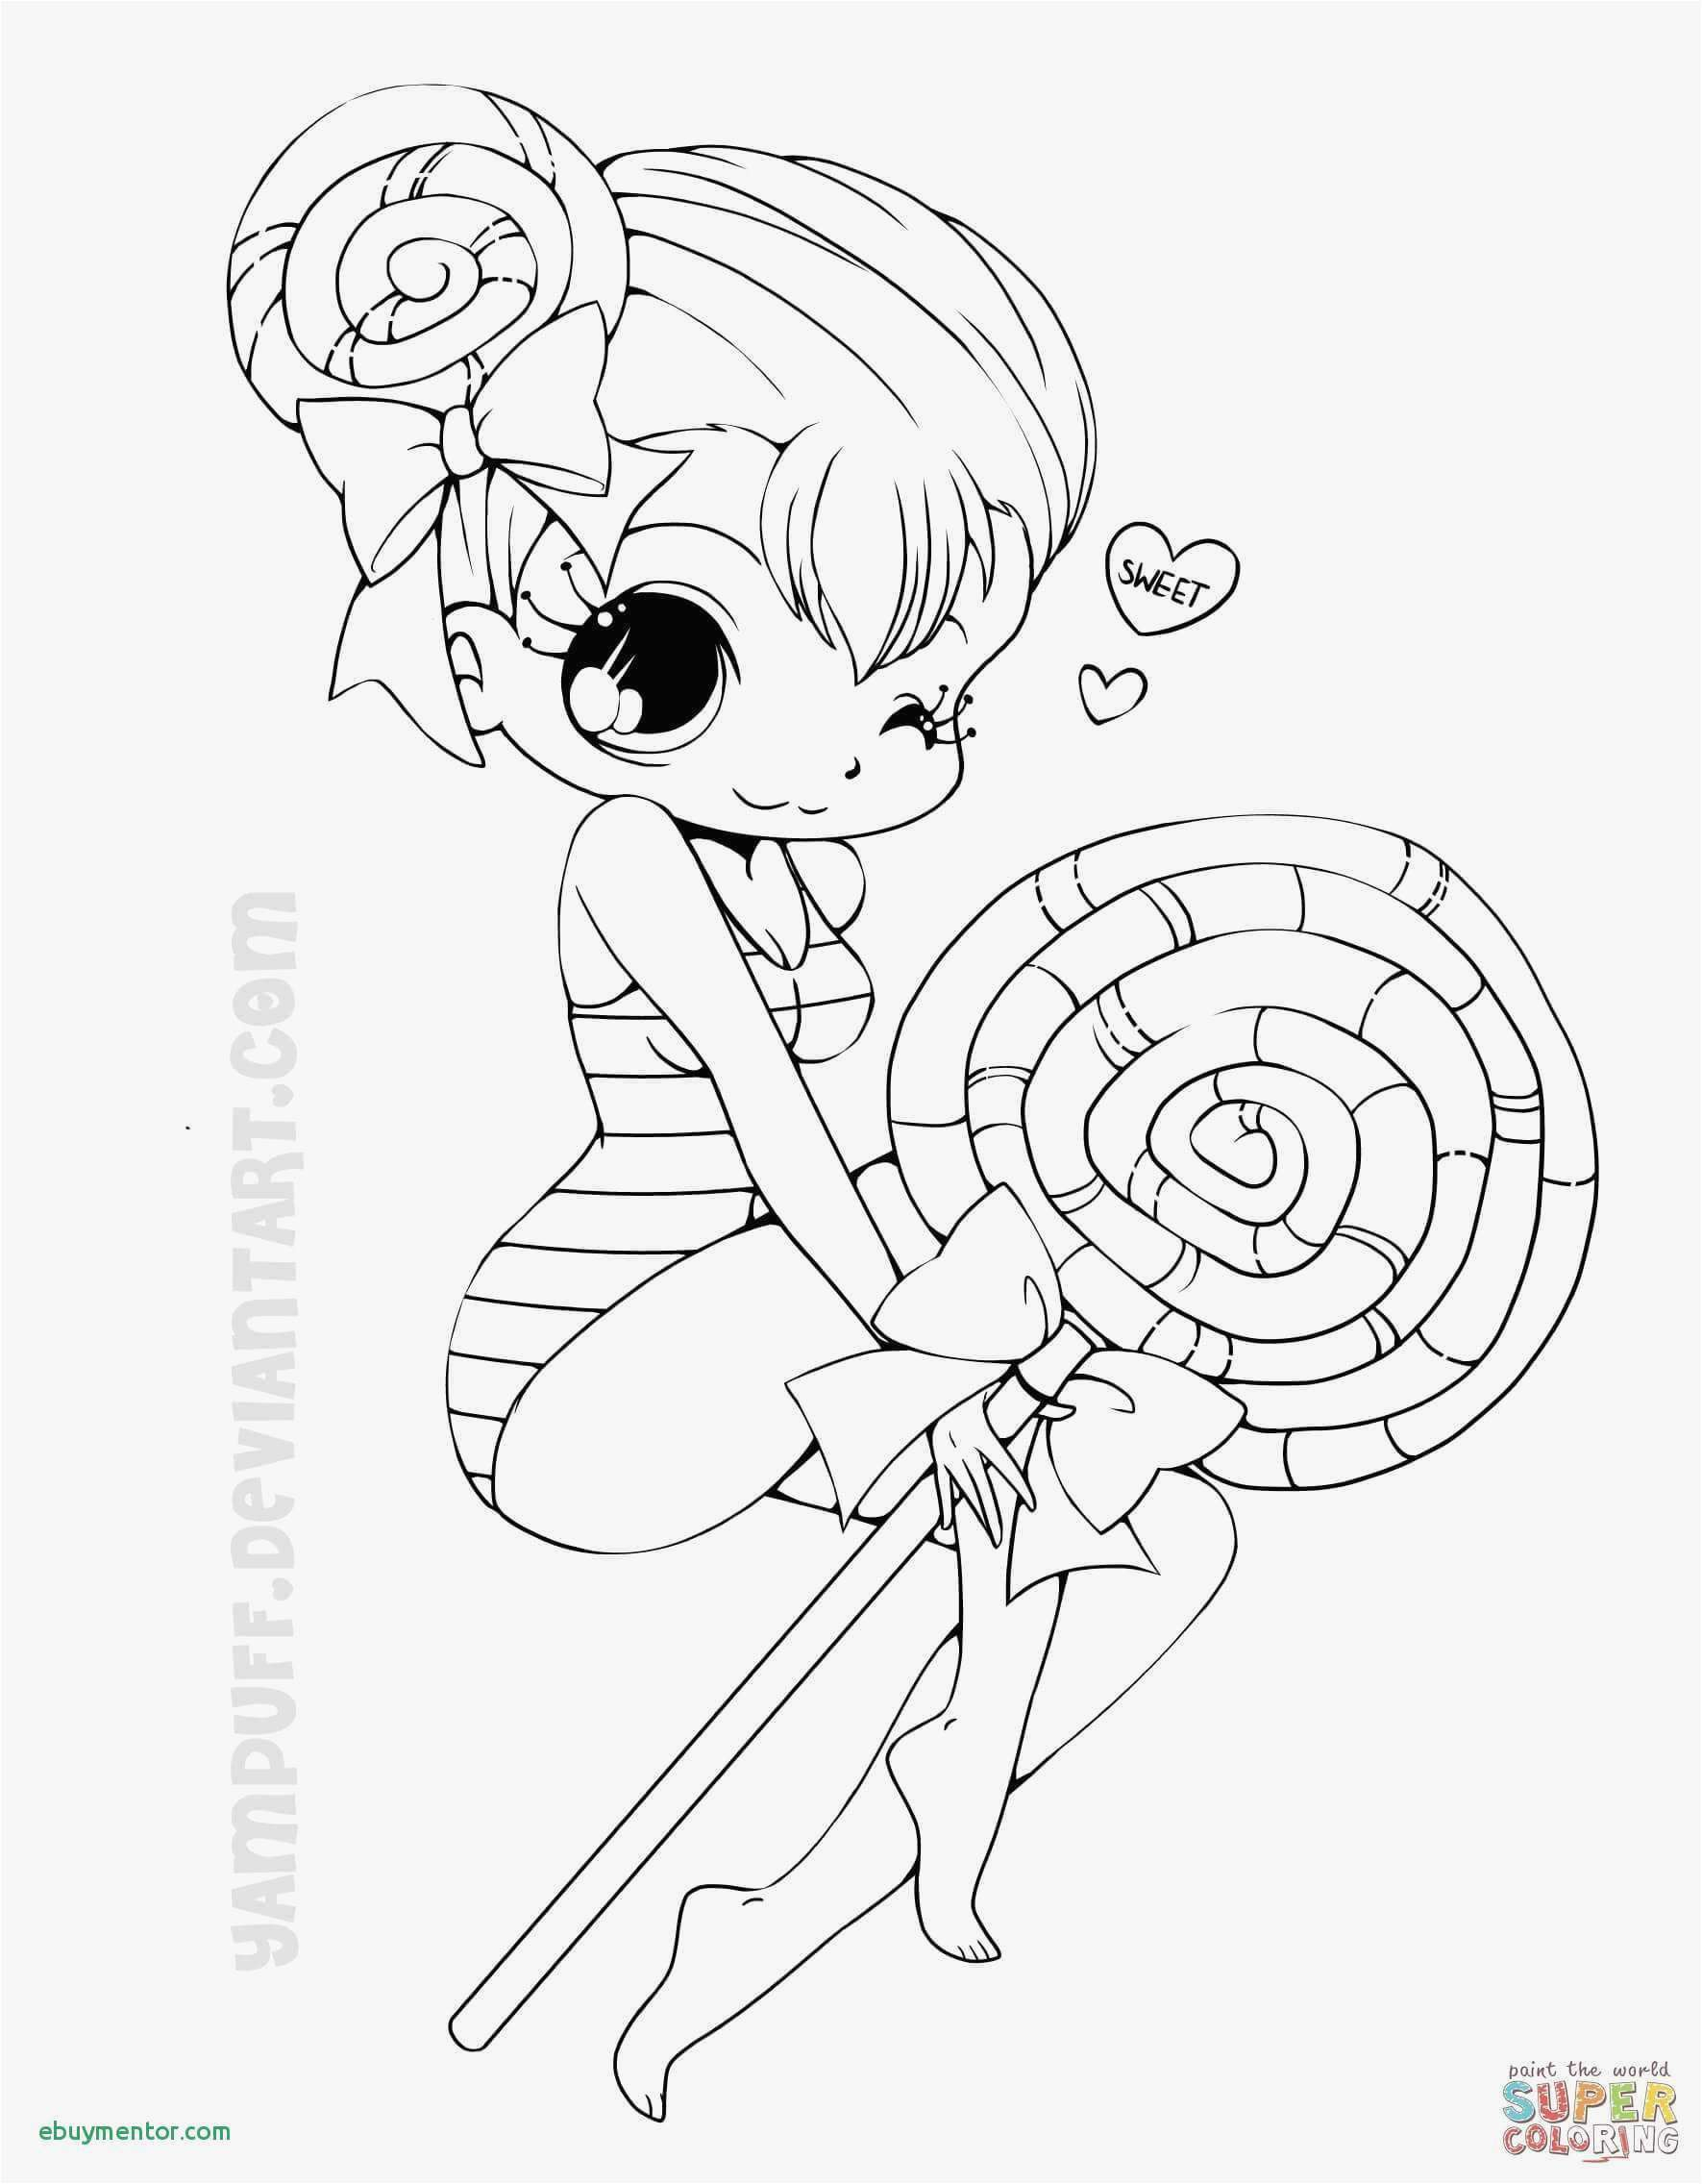 Career Coloring Pages  Download 16j - Save it to your computer